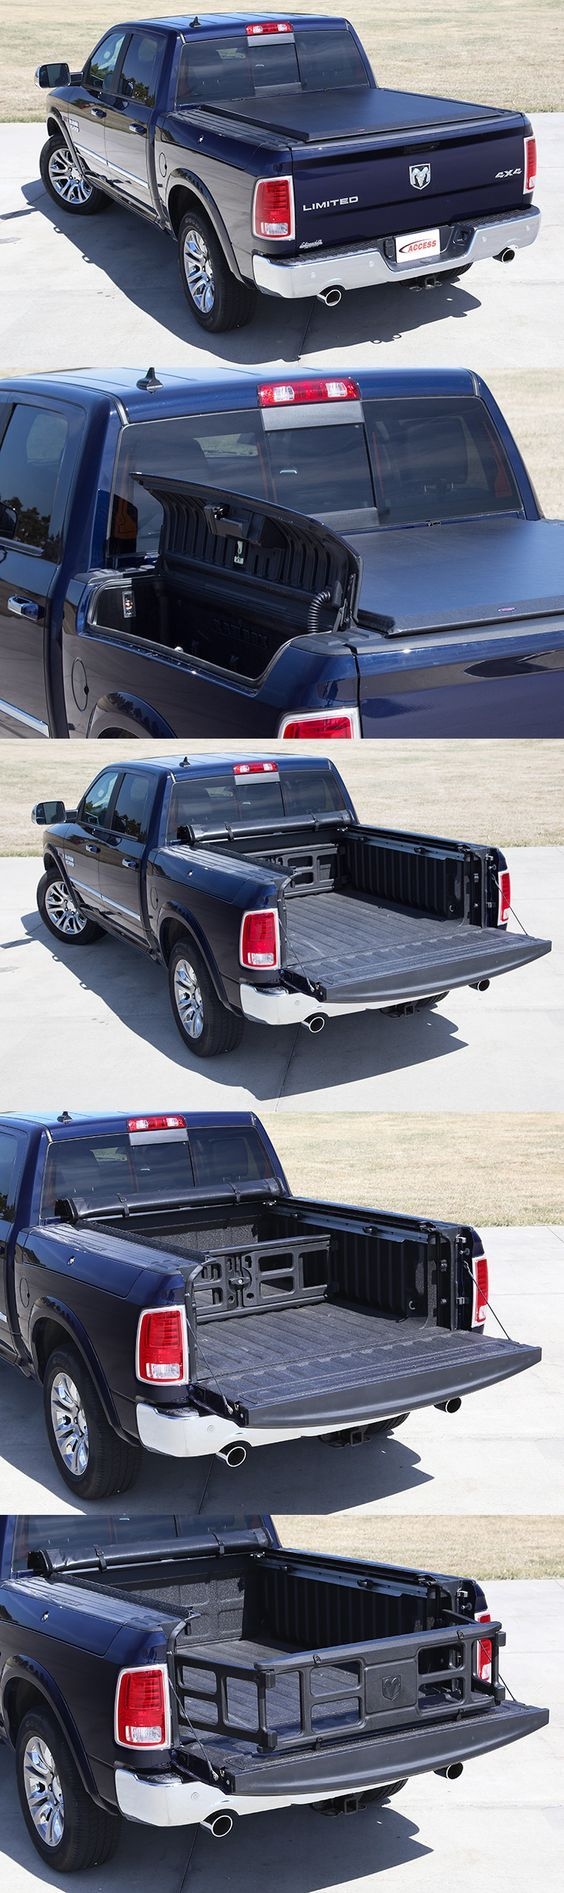 This ram 1500 truck has the rambox package and our access limited edition roll up cover this tonneau cover works perfectly with the rambox package